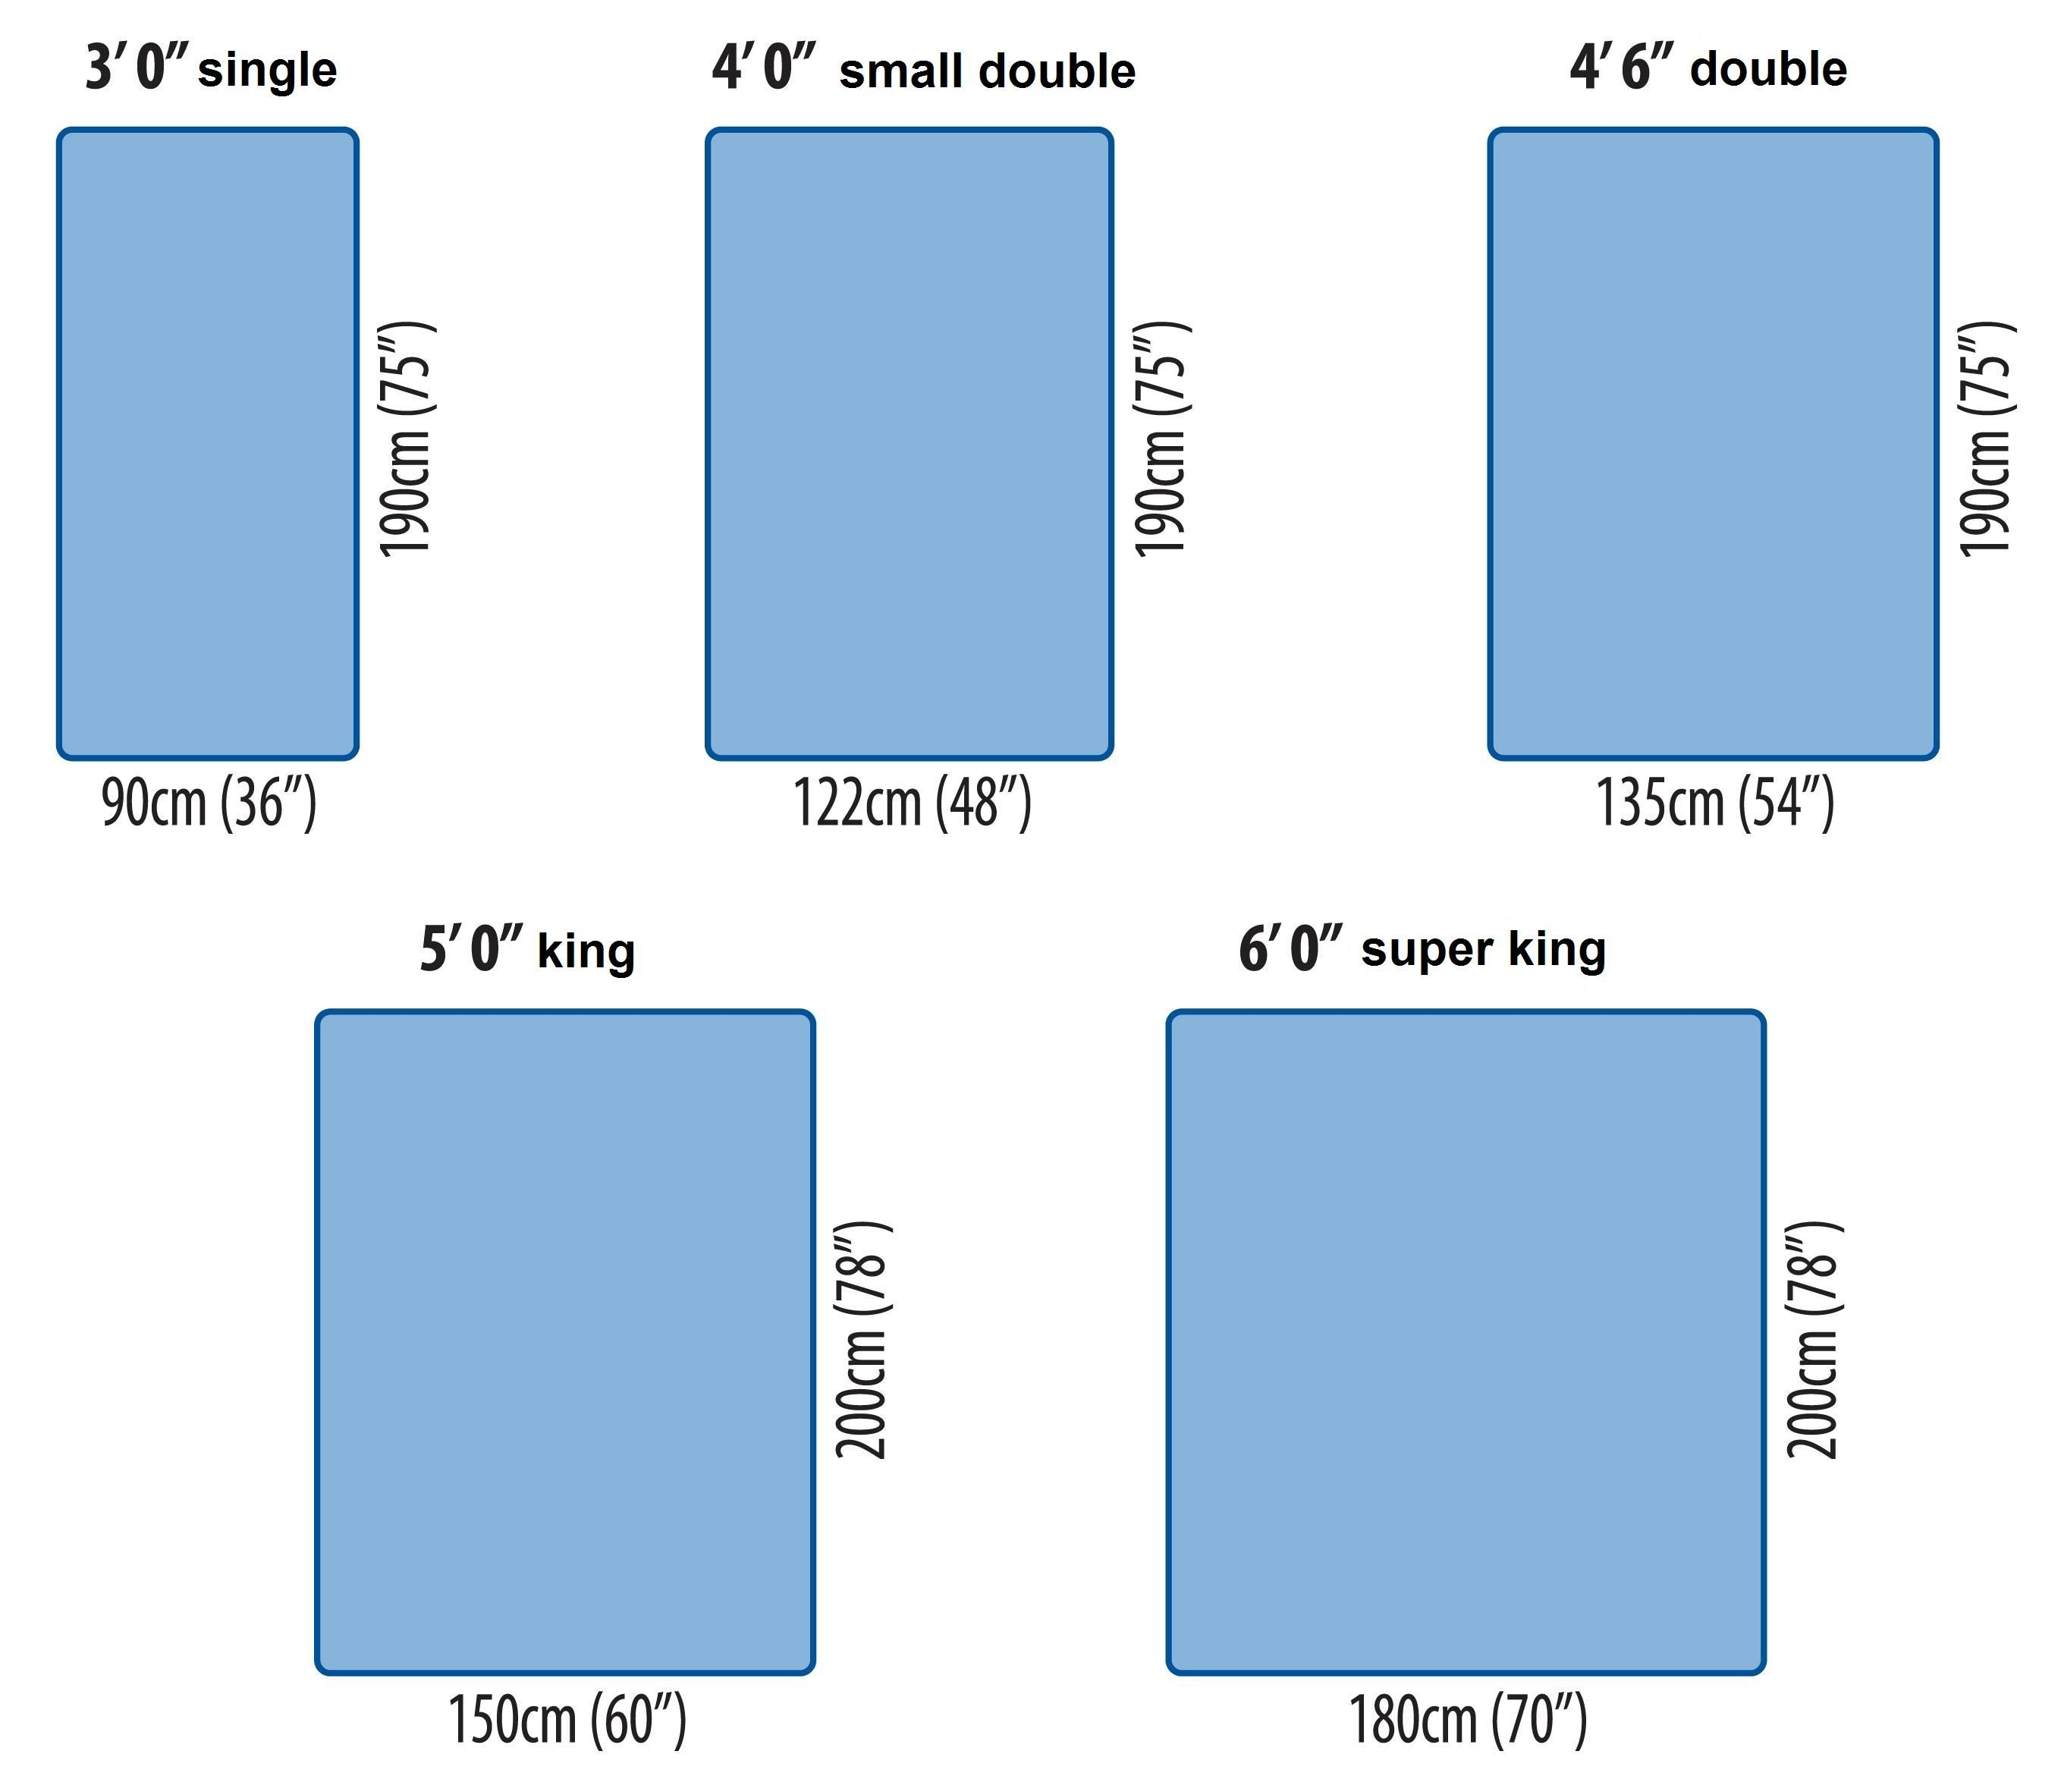 King Size Bed Width In Inches